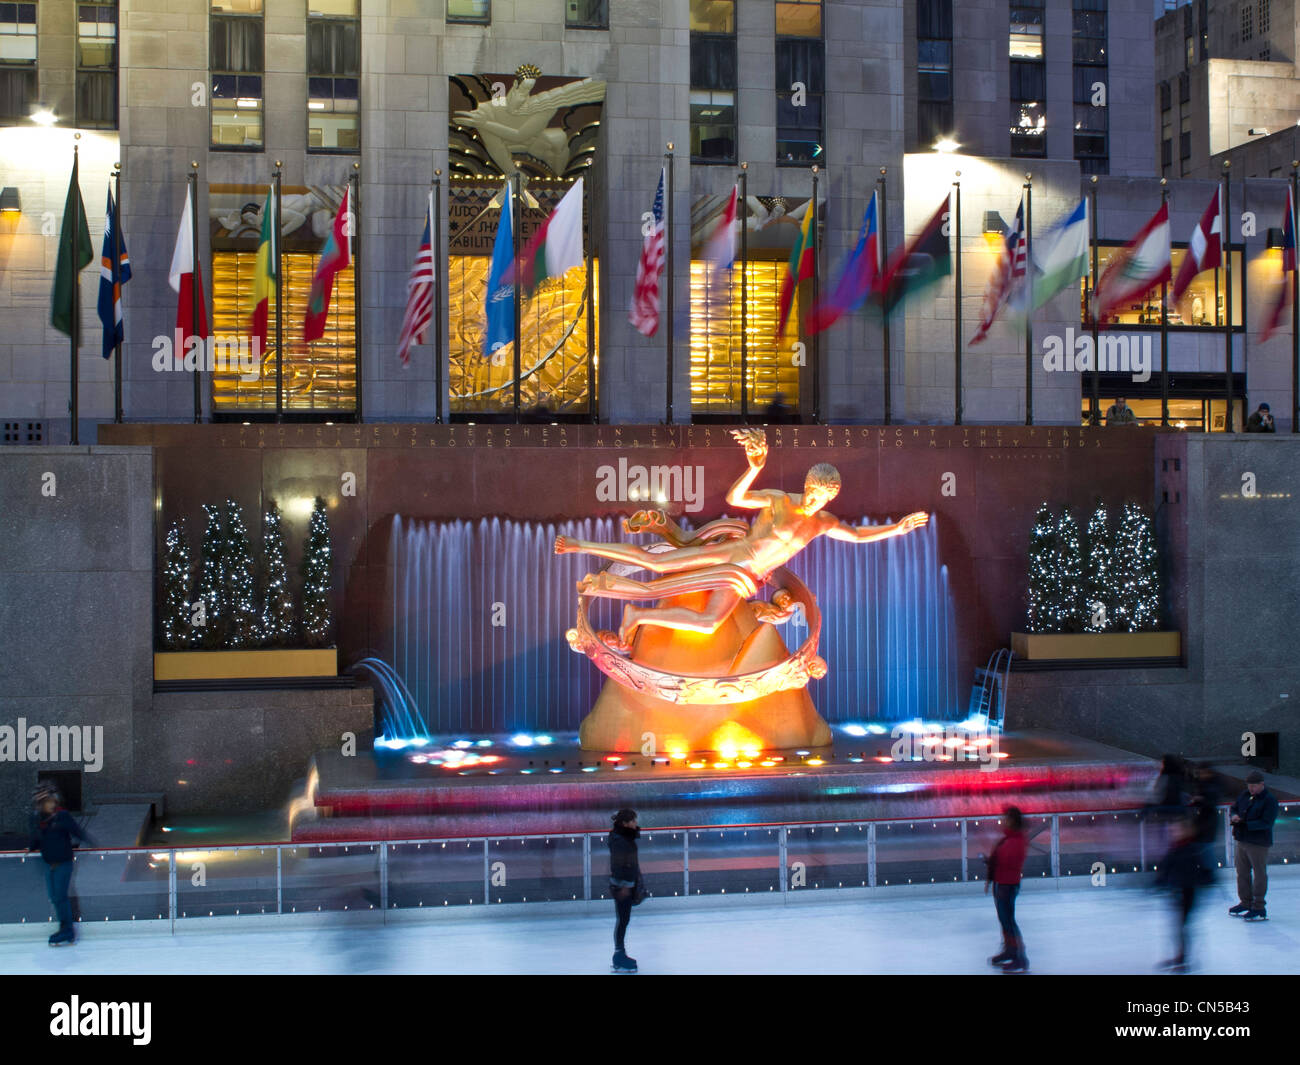 Prometheus and skating rink in Rockefeller Center, NYC Stock